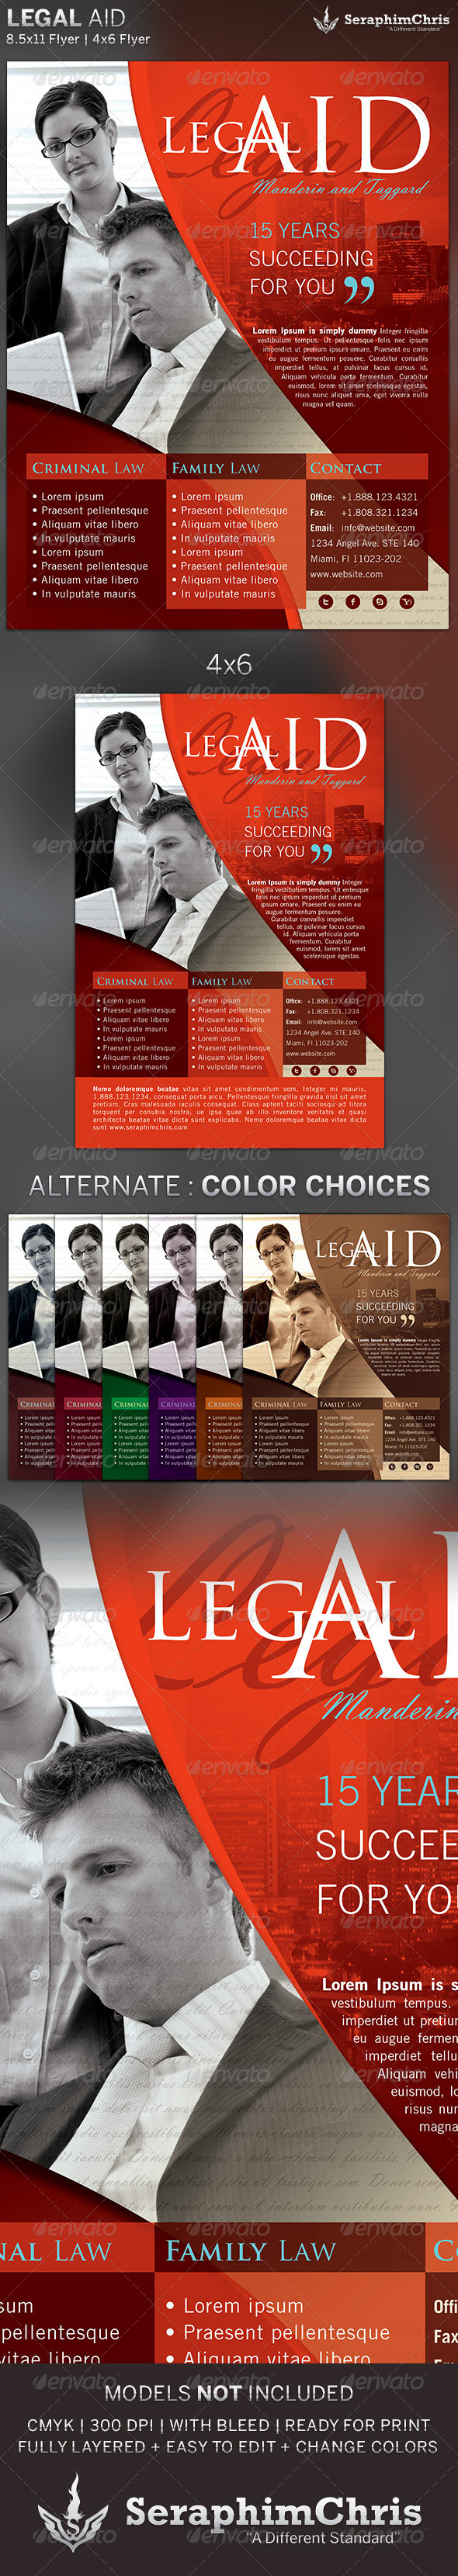 GraphicRiver Legal Aid Flyer Template 2 5389892